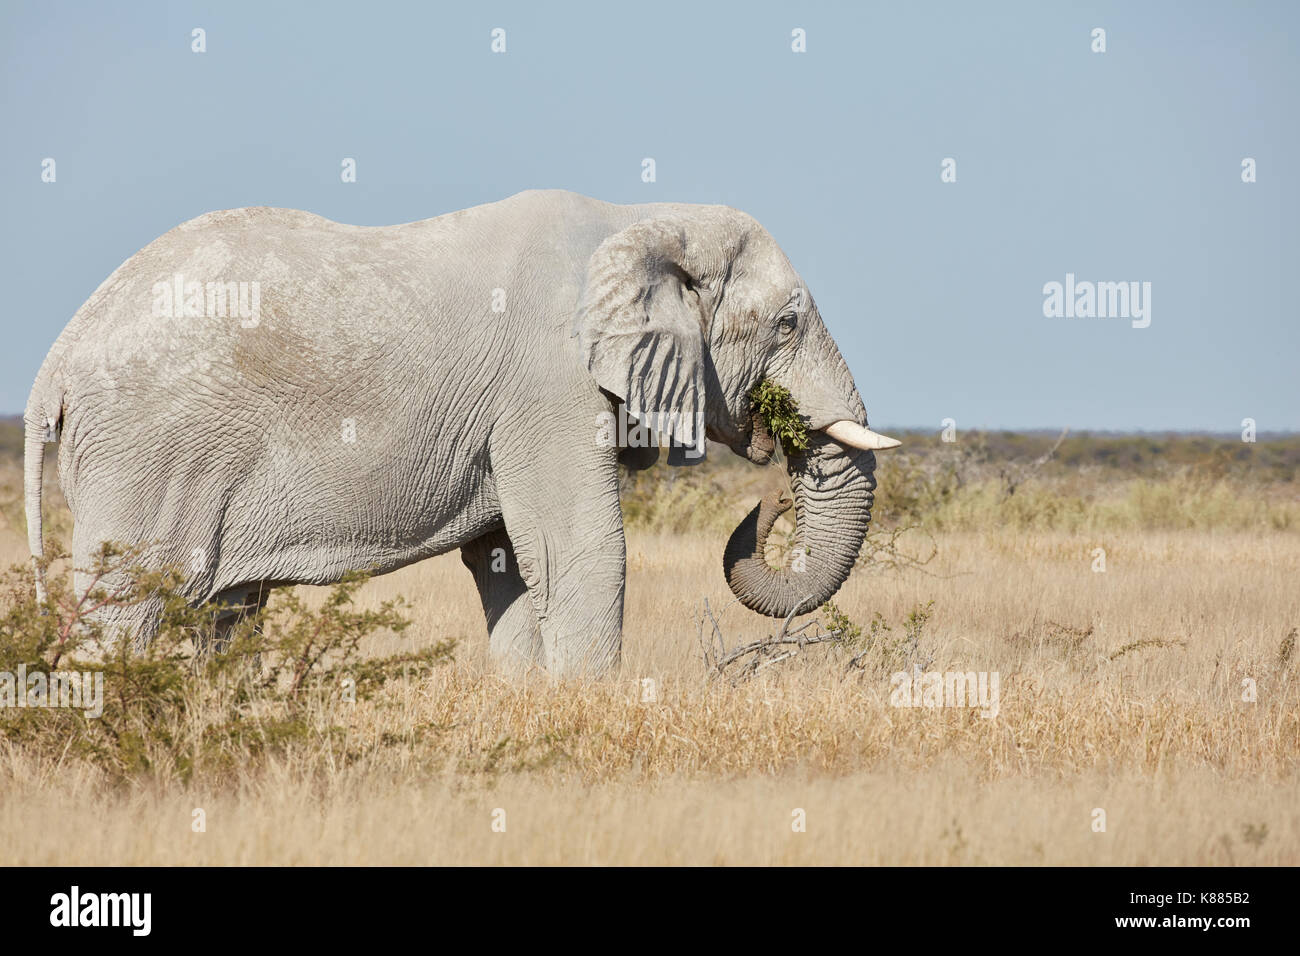 An African elephant, Loxodonta africana, with tusks standing in grassland. - Stock Image